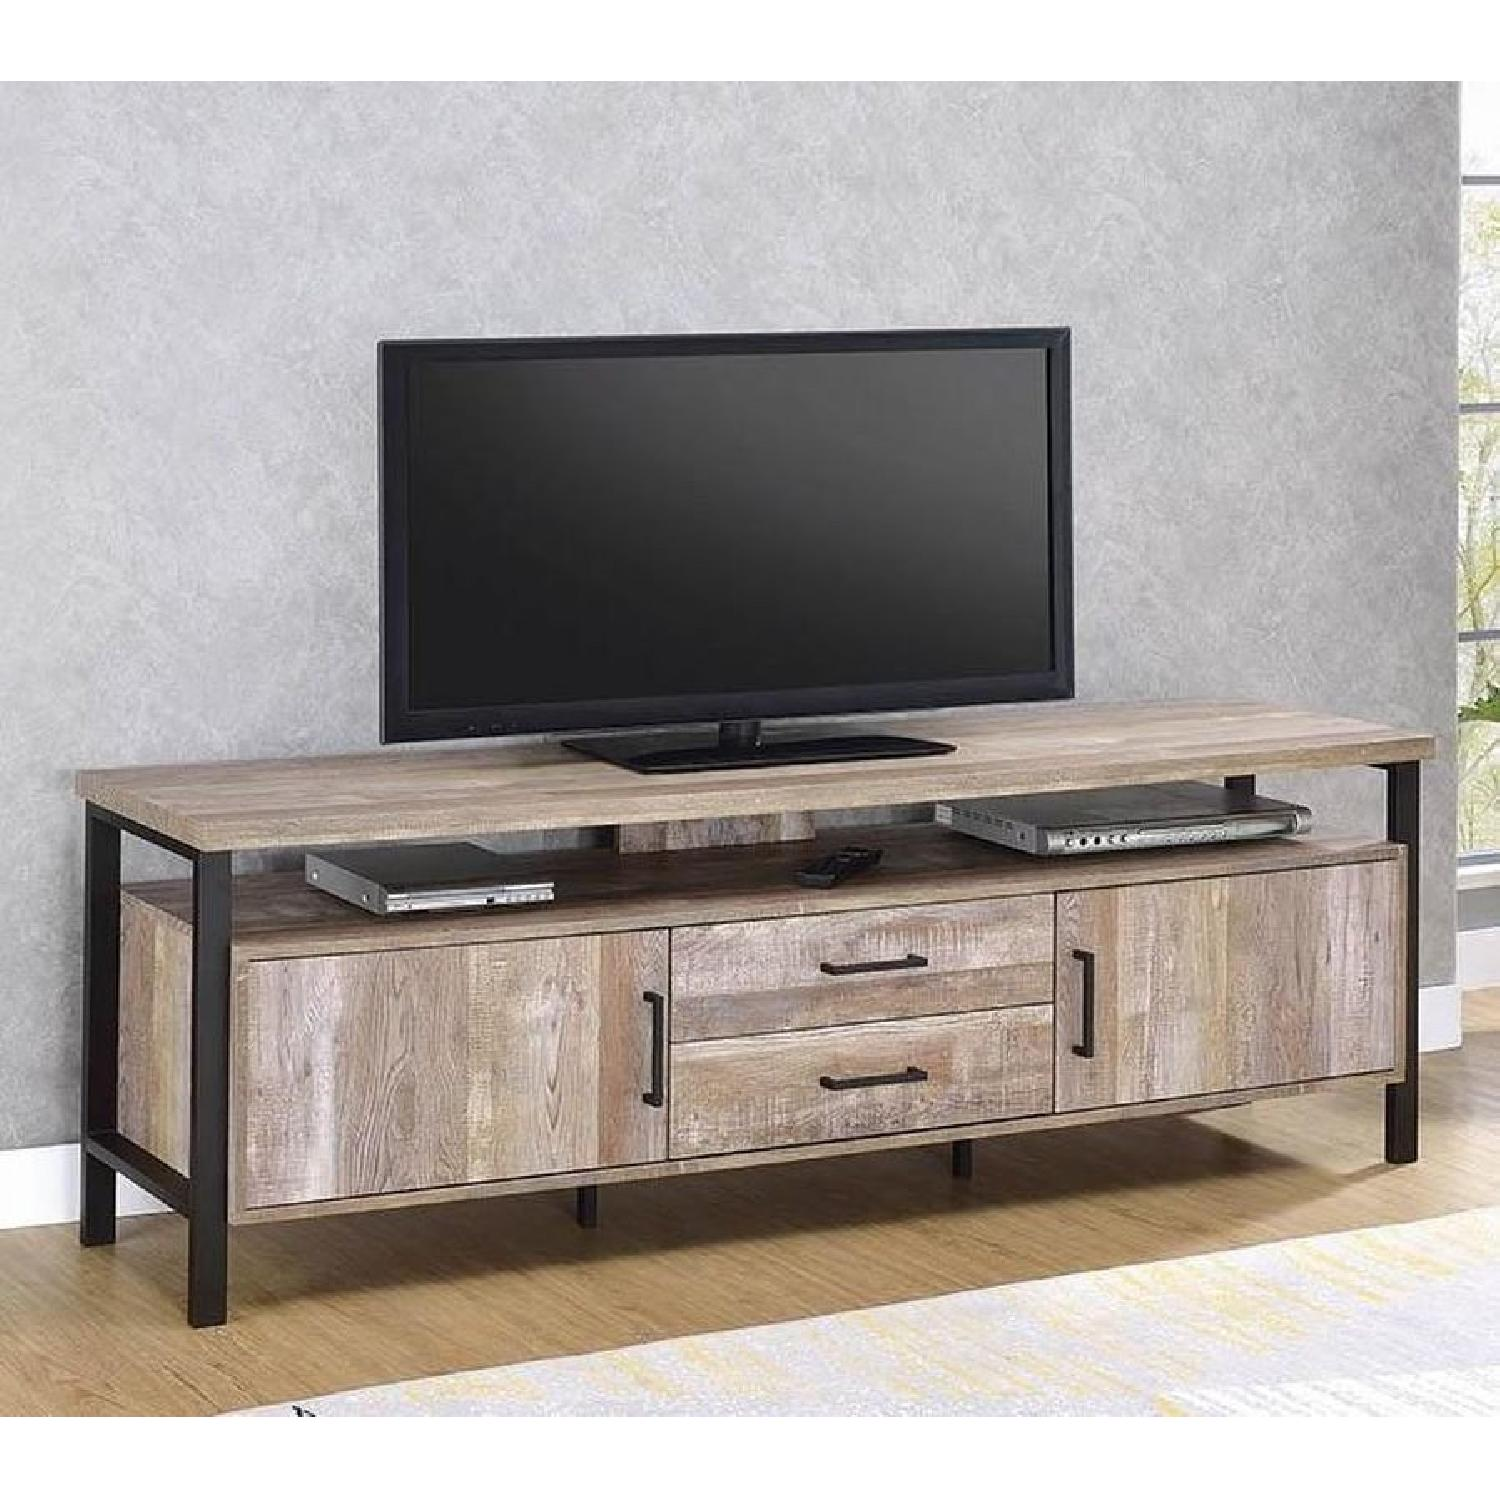 TV Stand In Rustic Oak Finish w/ 2 Cabinets & 2 Drawers - image-18